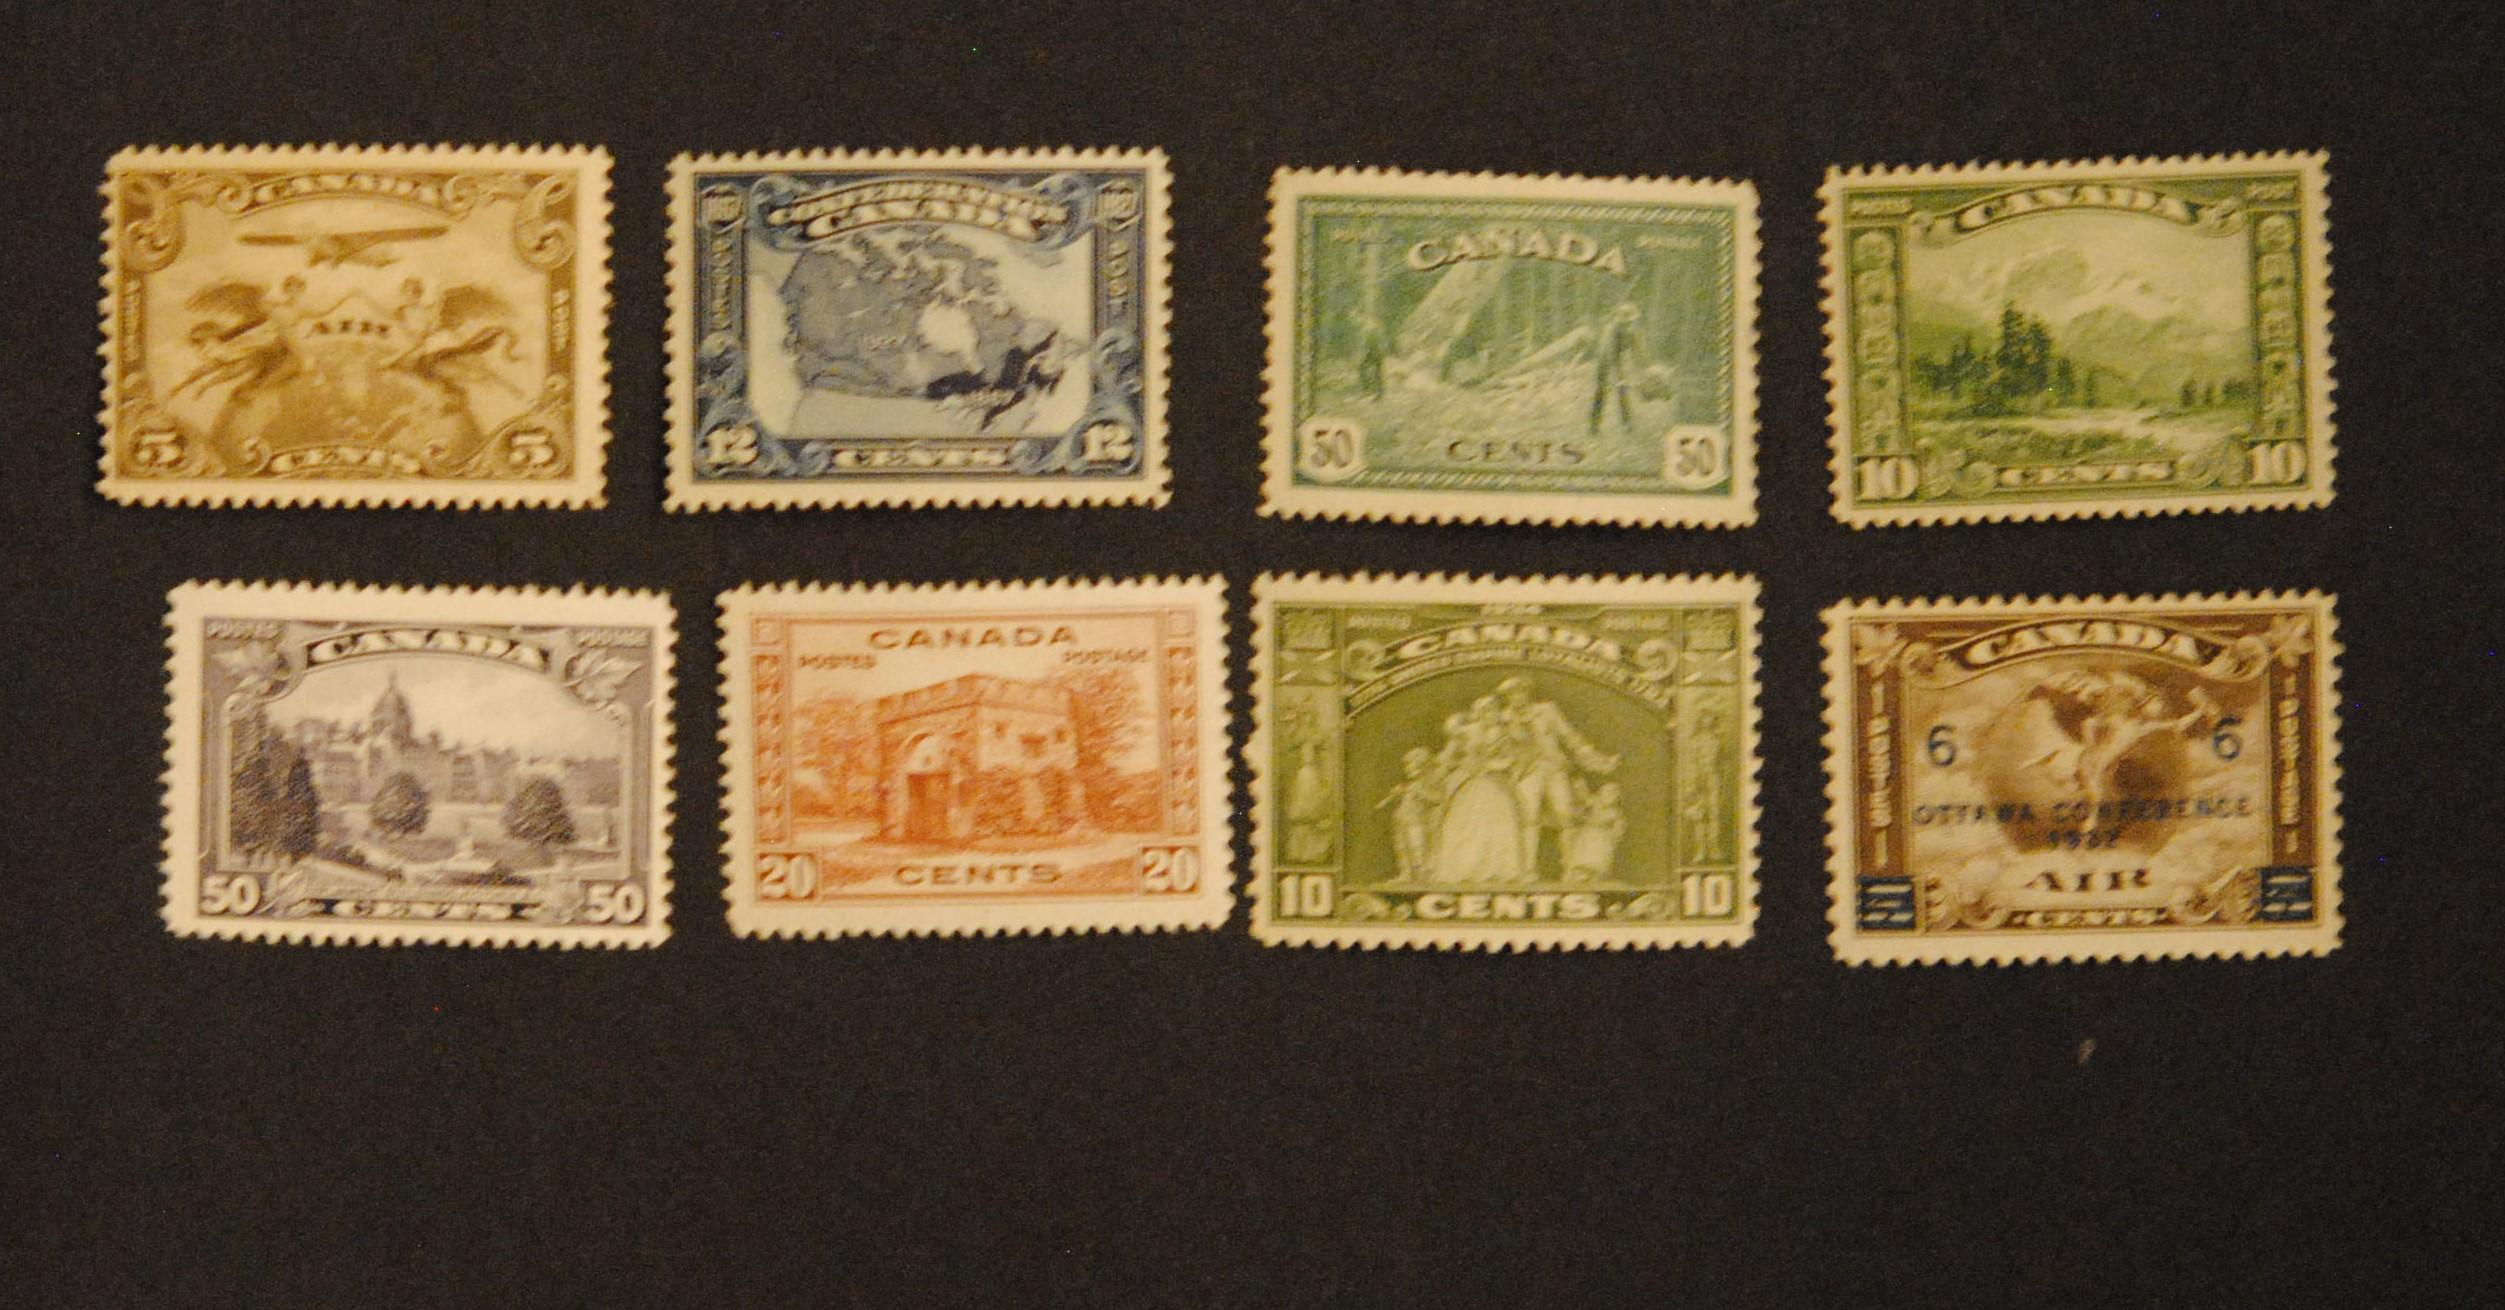 Canada Stamp Collection 8